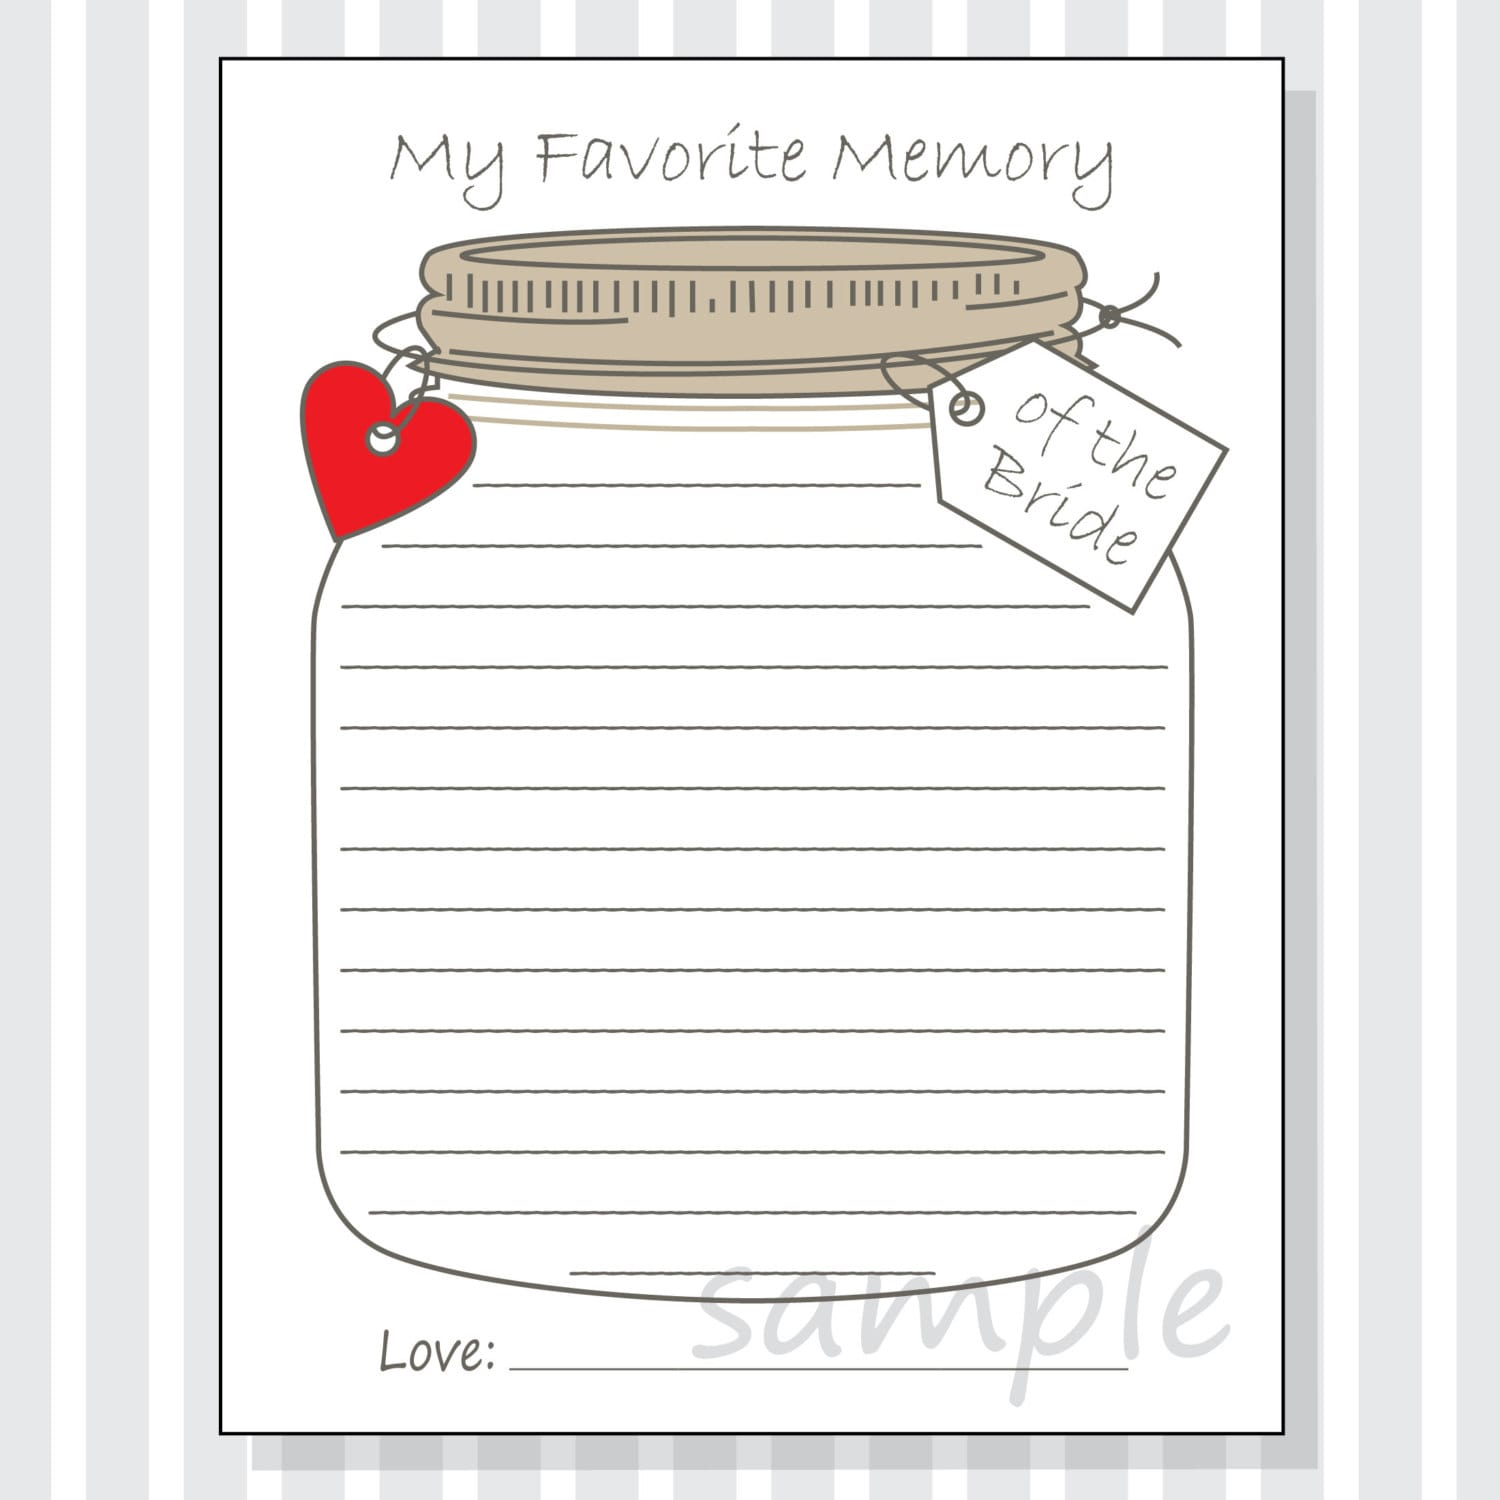 famous memory book template image collection resume ideas